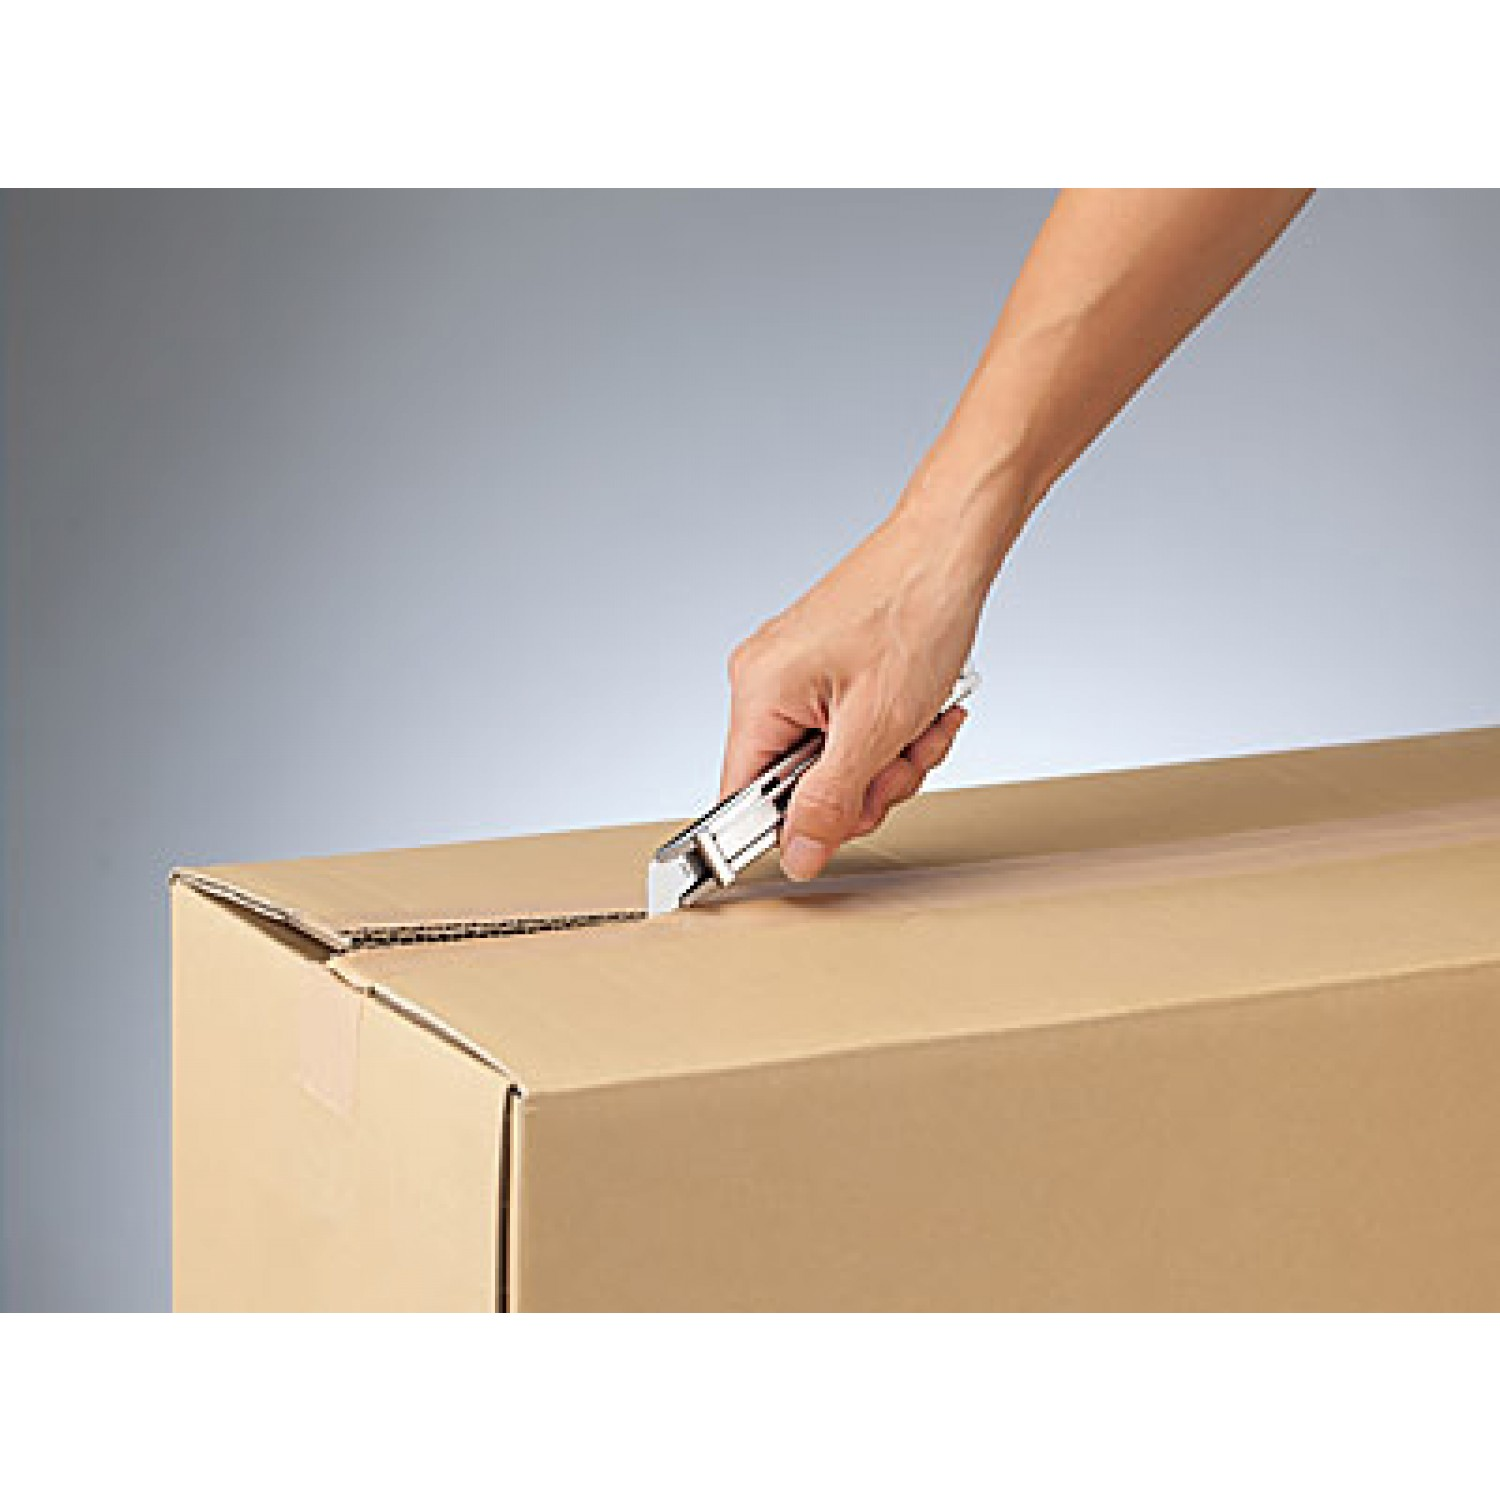 Olfa Stainless Steel Self Retracting Safety Knife (SK-12, 1117956), cutting box